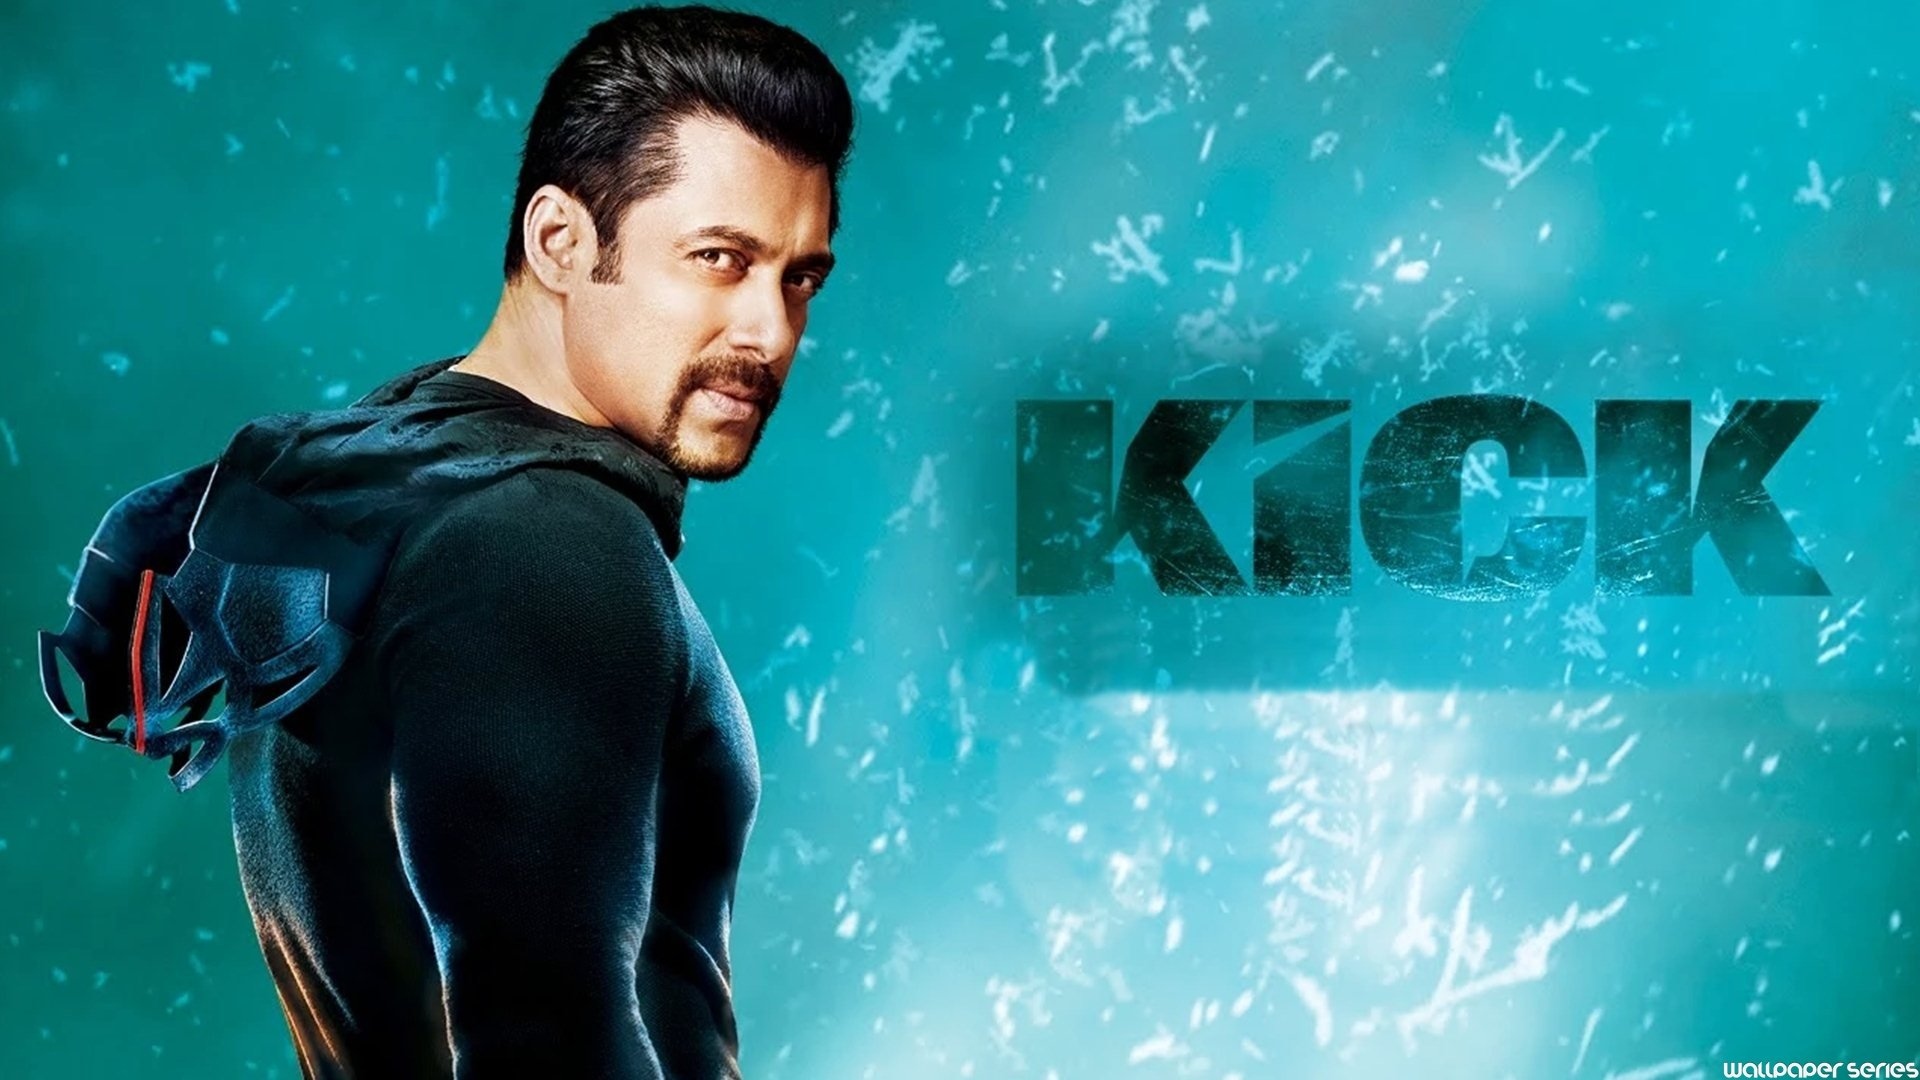 Kick Salman Khan 2014 Movie Poster Wallpaper